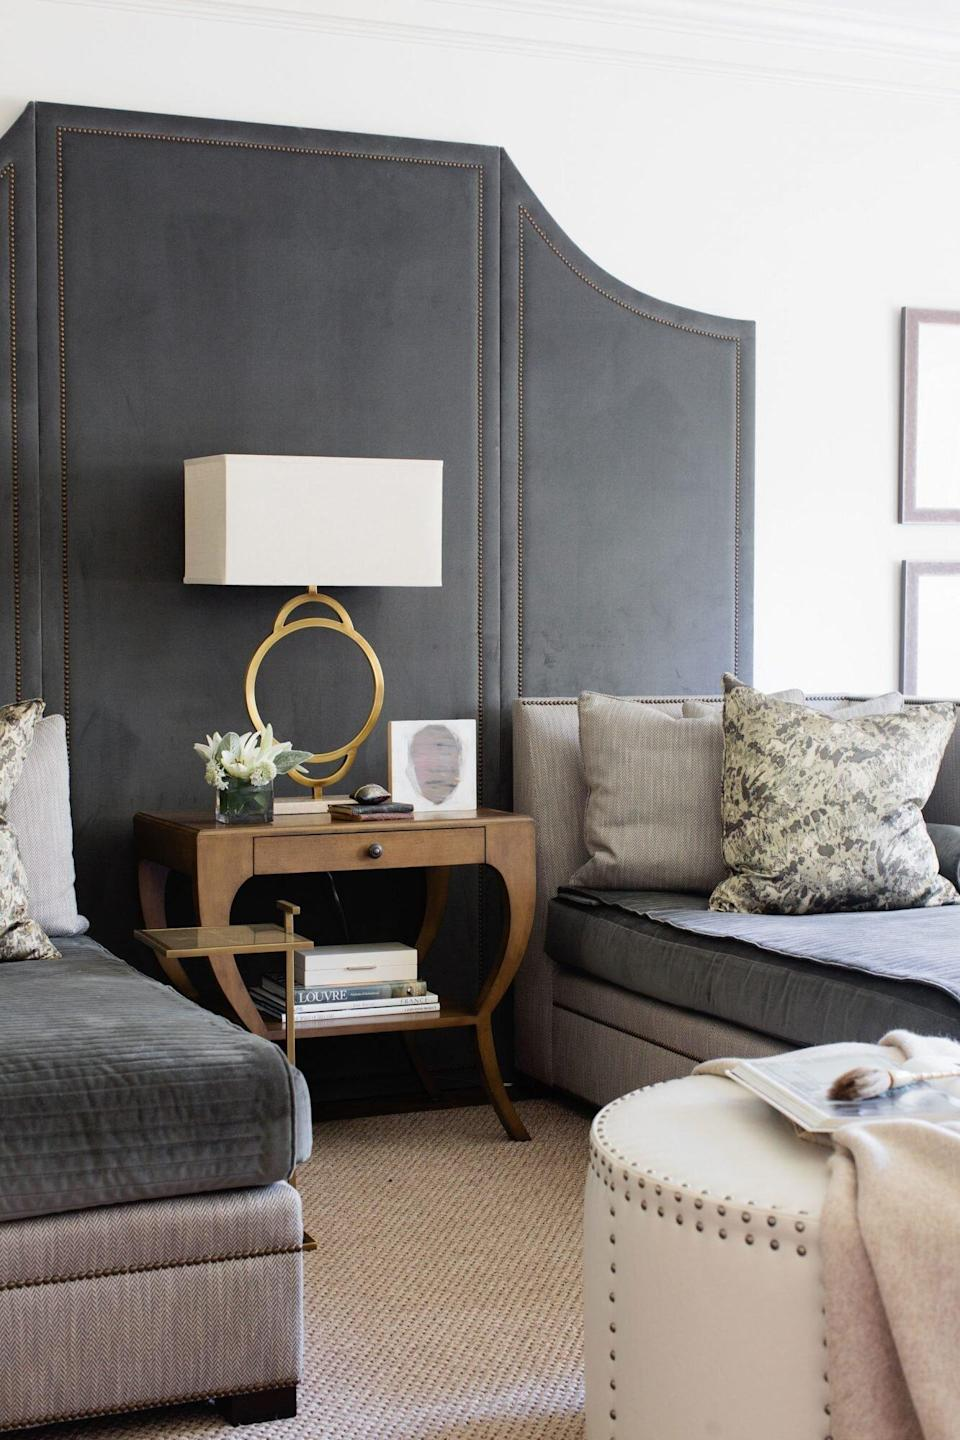 Living Room with Consistent Pattern Upholstery